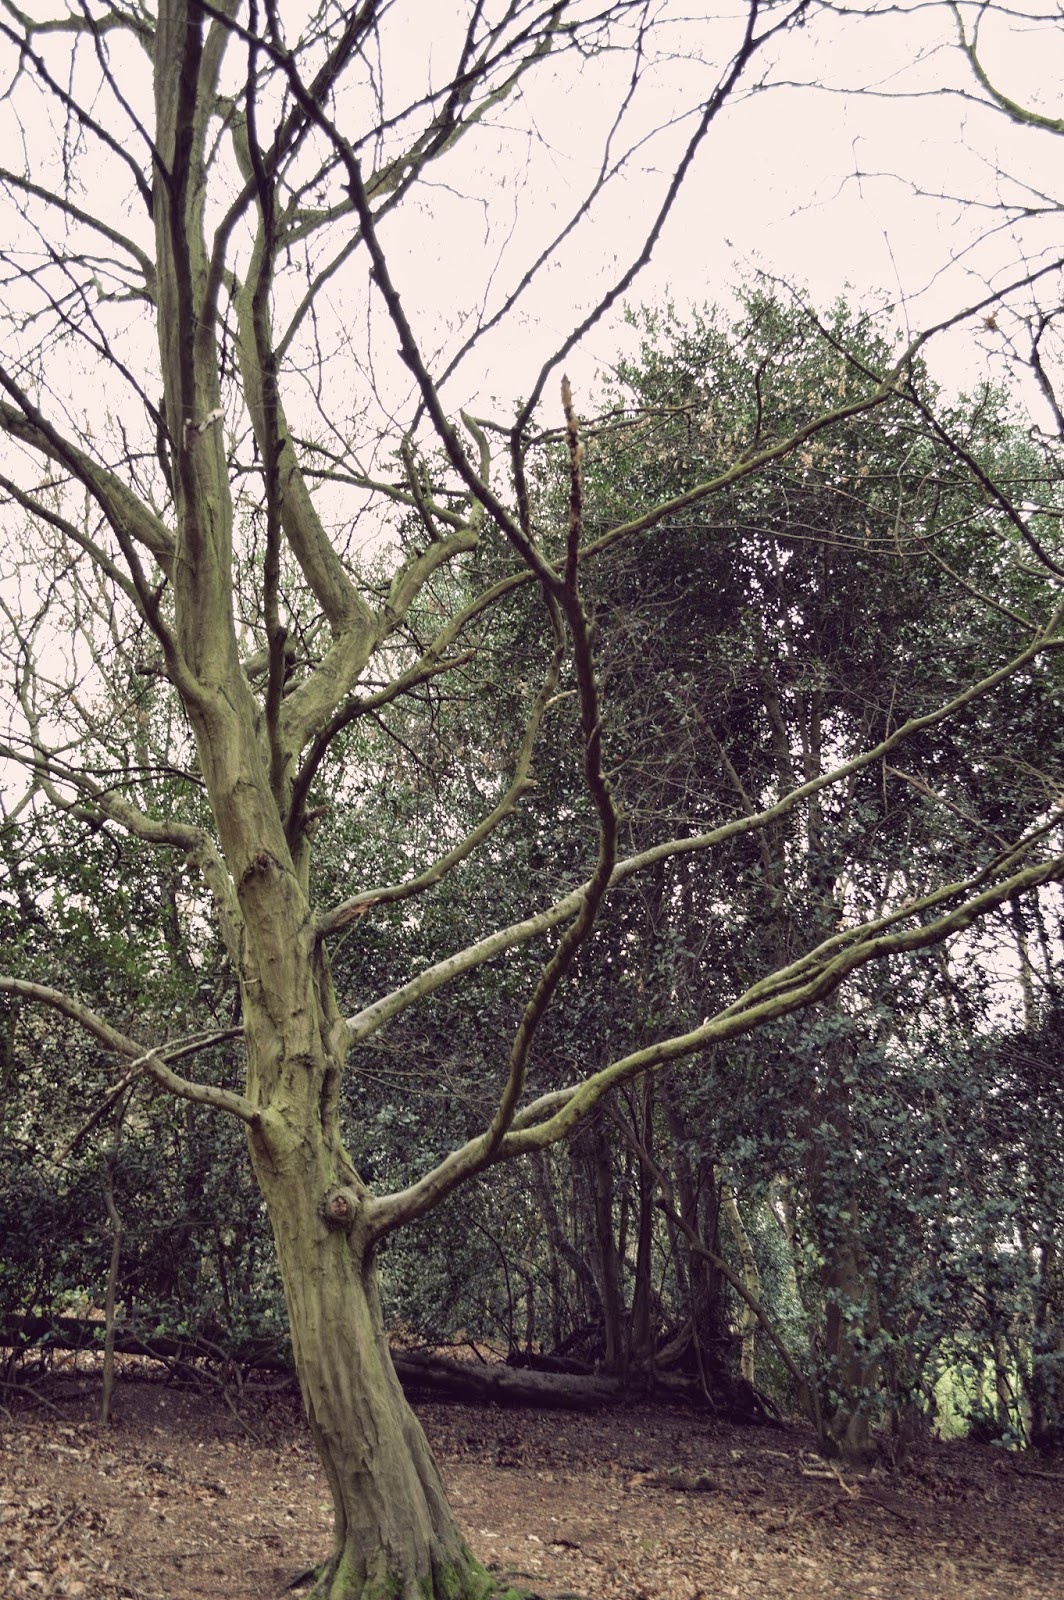 photograph, walk, Chelmsford, public footpath, Essex, wood, woodland, trees, winter, branches, route, badger, bluebells, pictures,